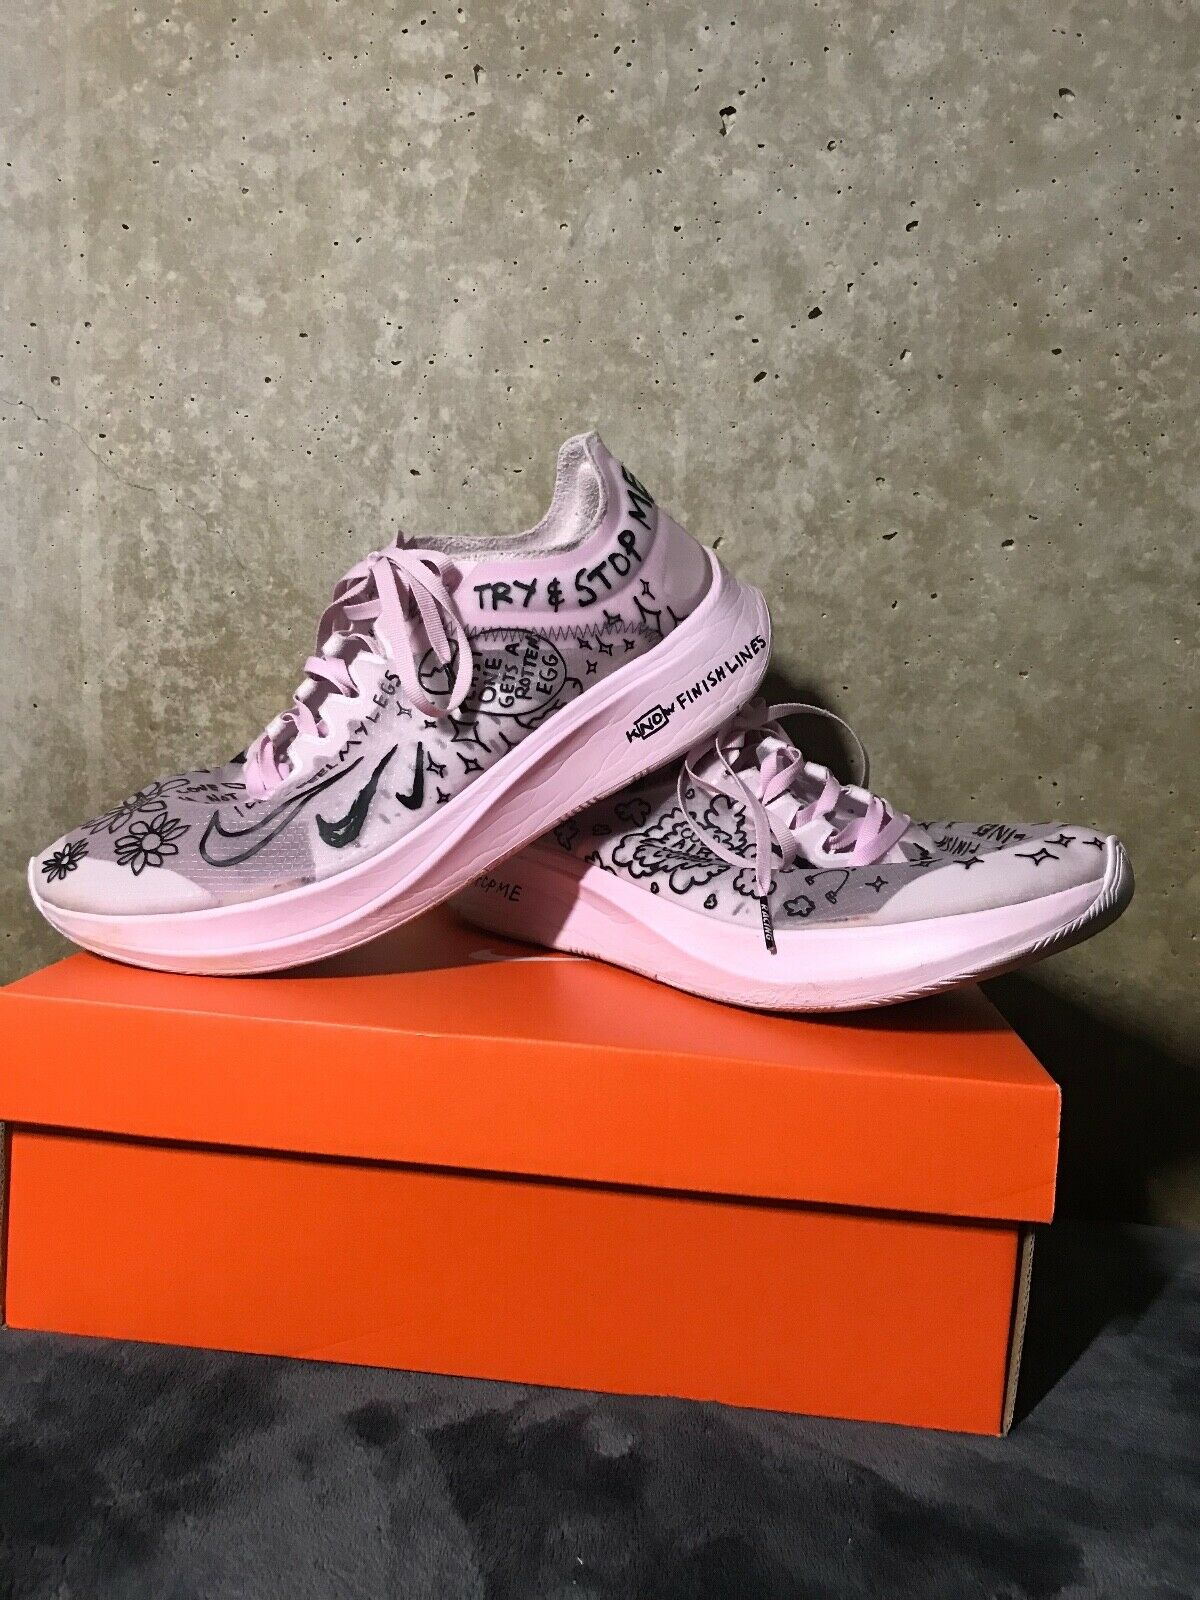 Nike Zoom Fly SP Fast Nathan Bell  White Pink Black   Men's Size 12